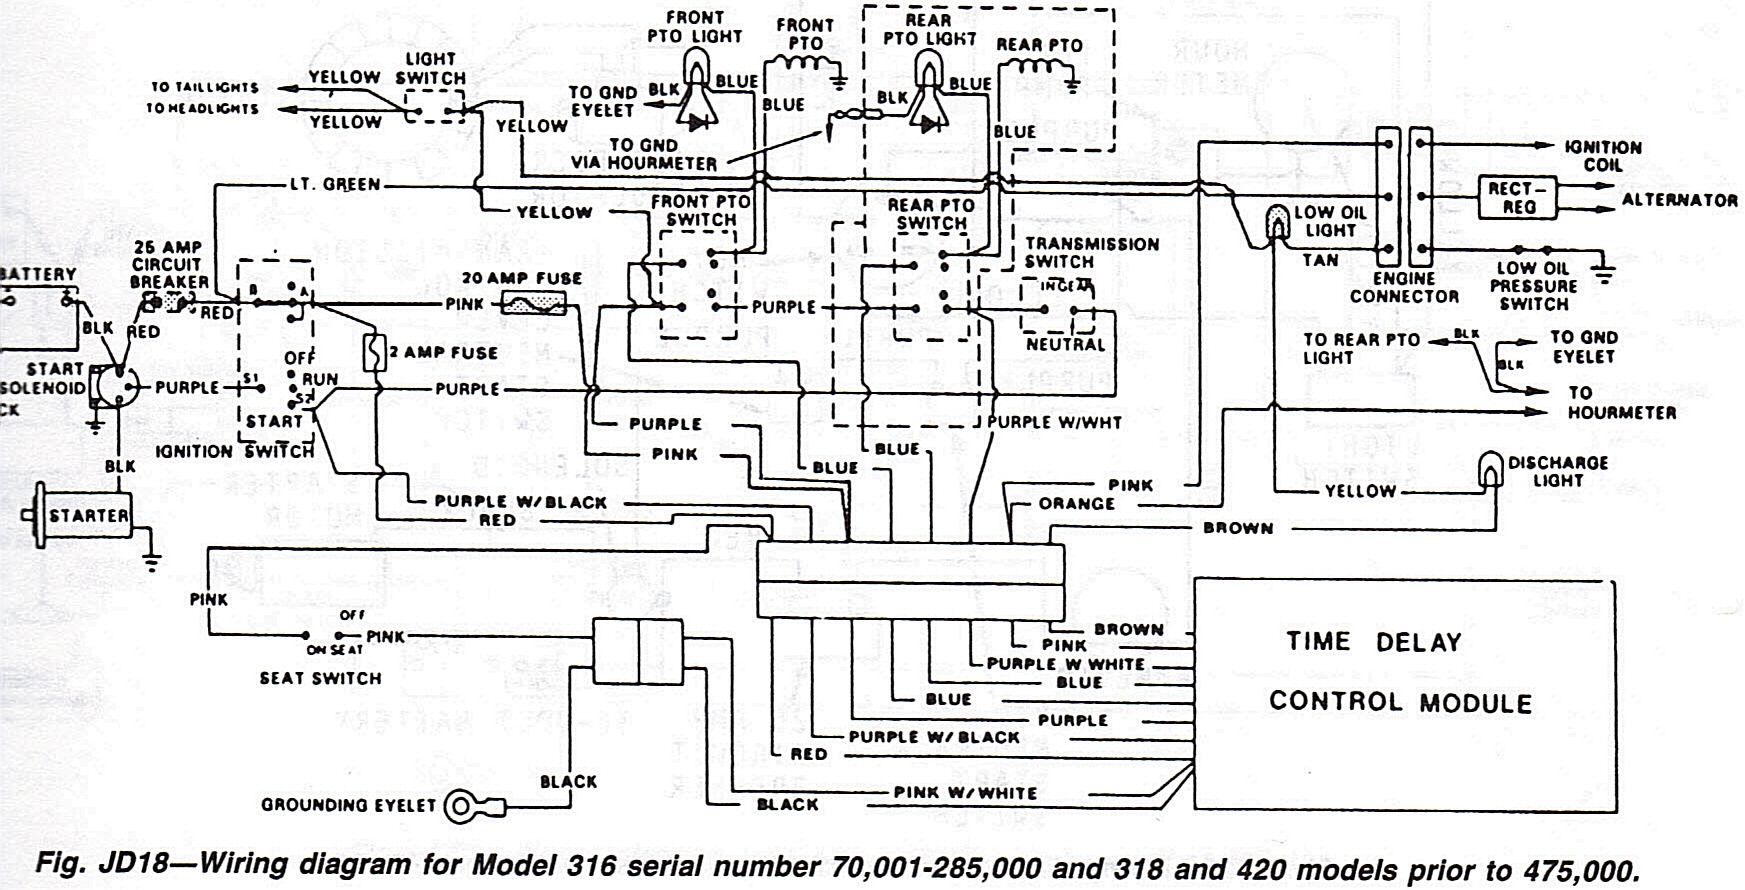 john deere 318 wiring diagram Download-John Deere 318 Wiring Diagram Download John Deere D140 Wiring Diagram 5 q 20-f